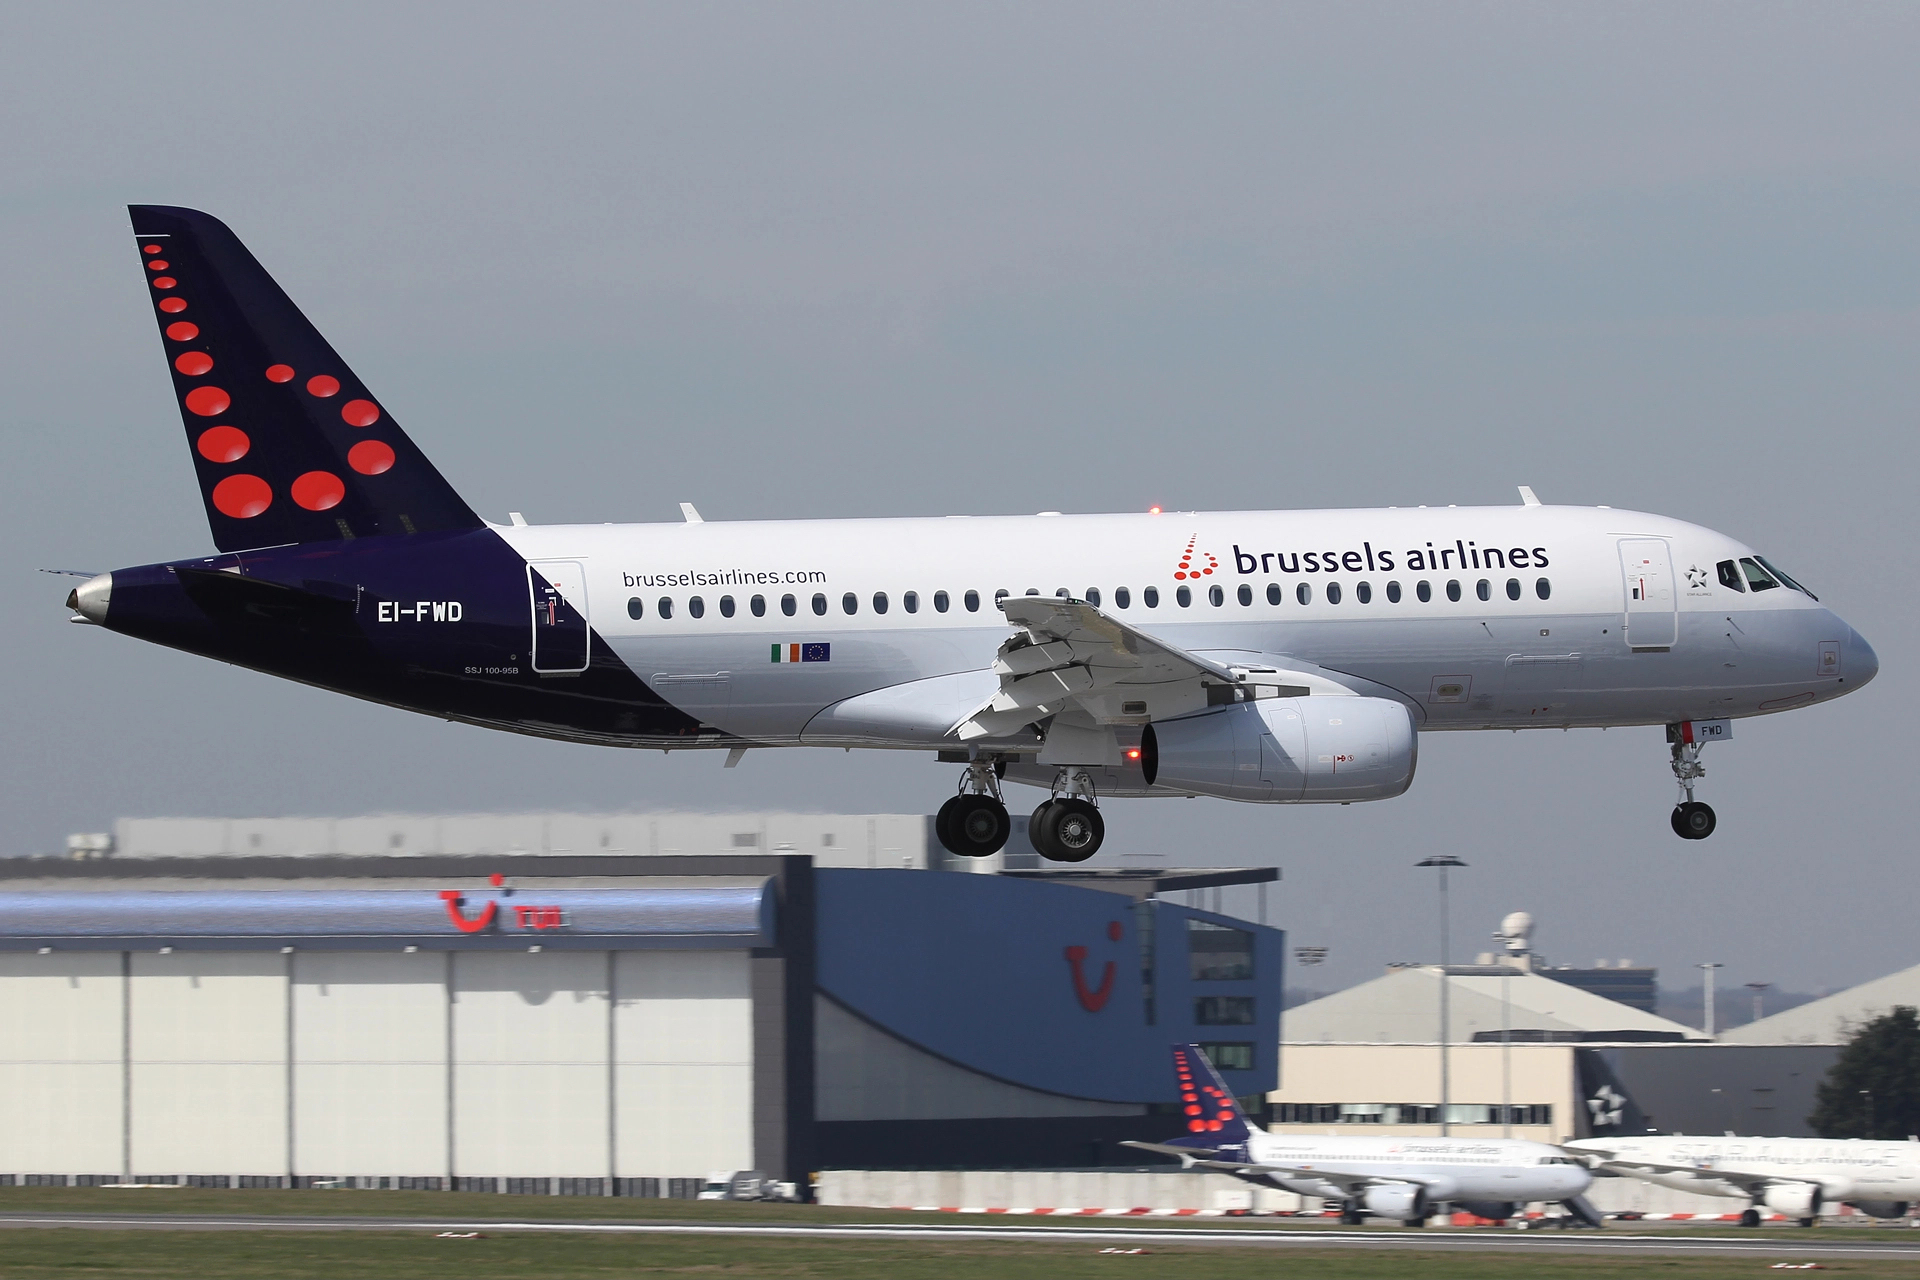 Bmi Chart: Brussels Airlines - Wikipedia,Chart